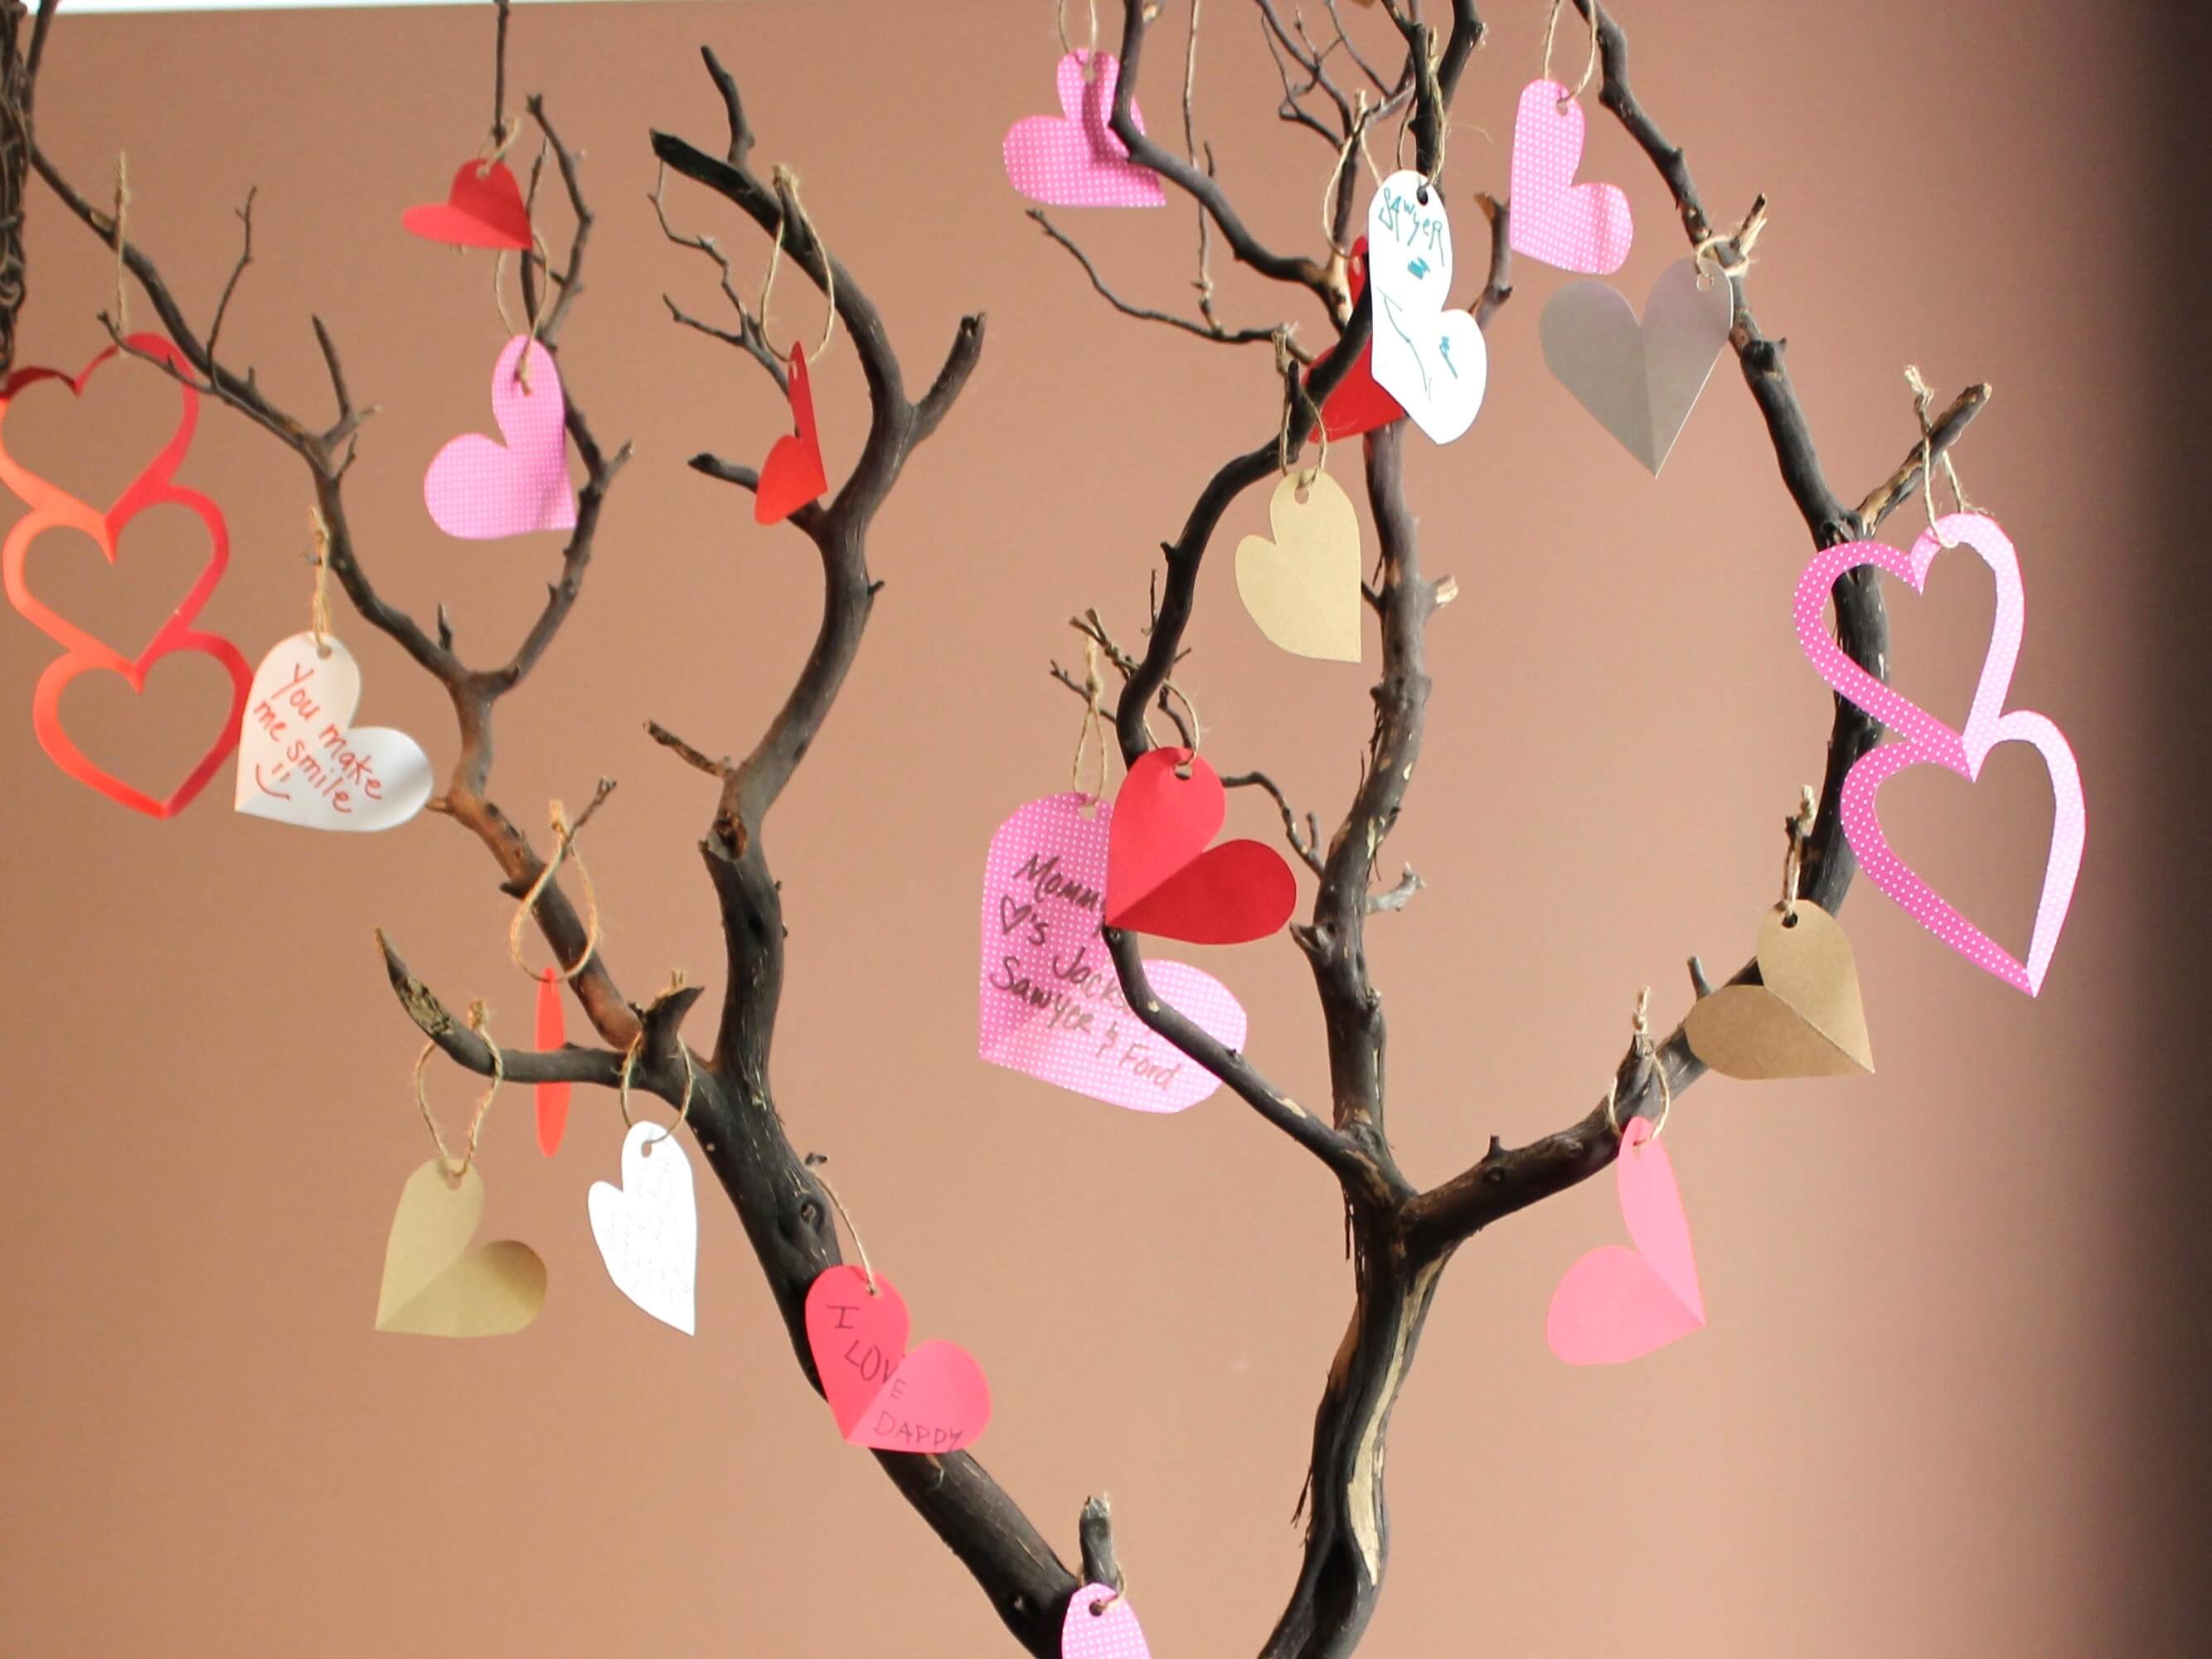 Romantic diy valentines day decor ideas for home for Valentine decorations to make at home